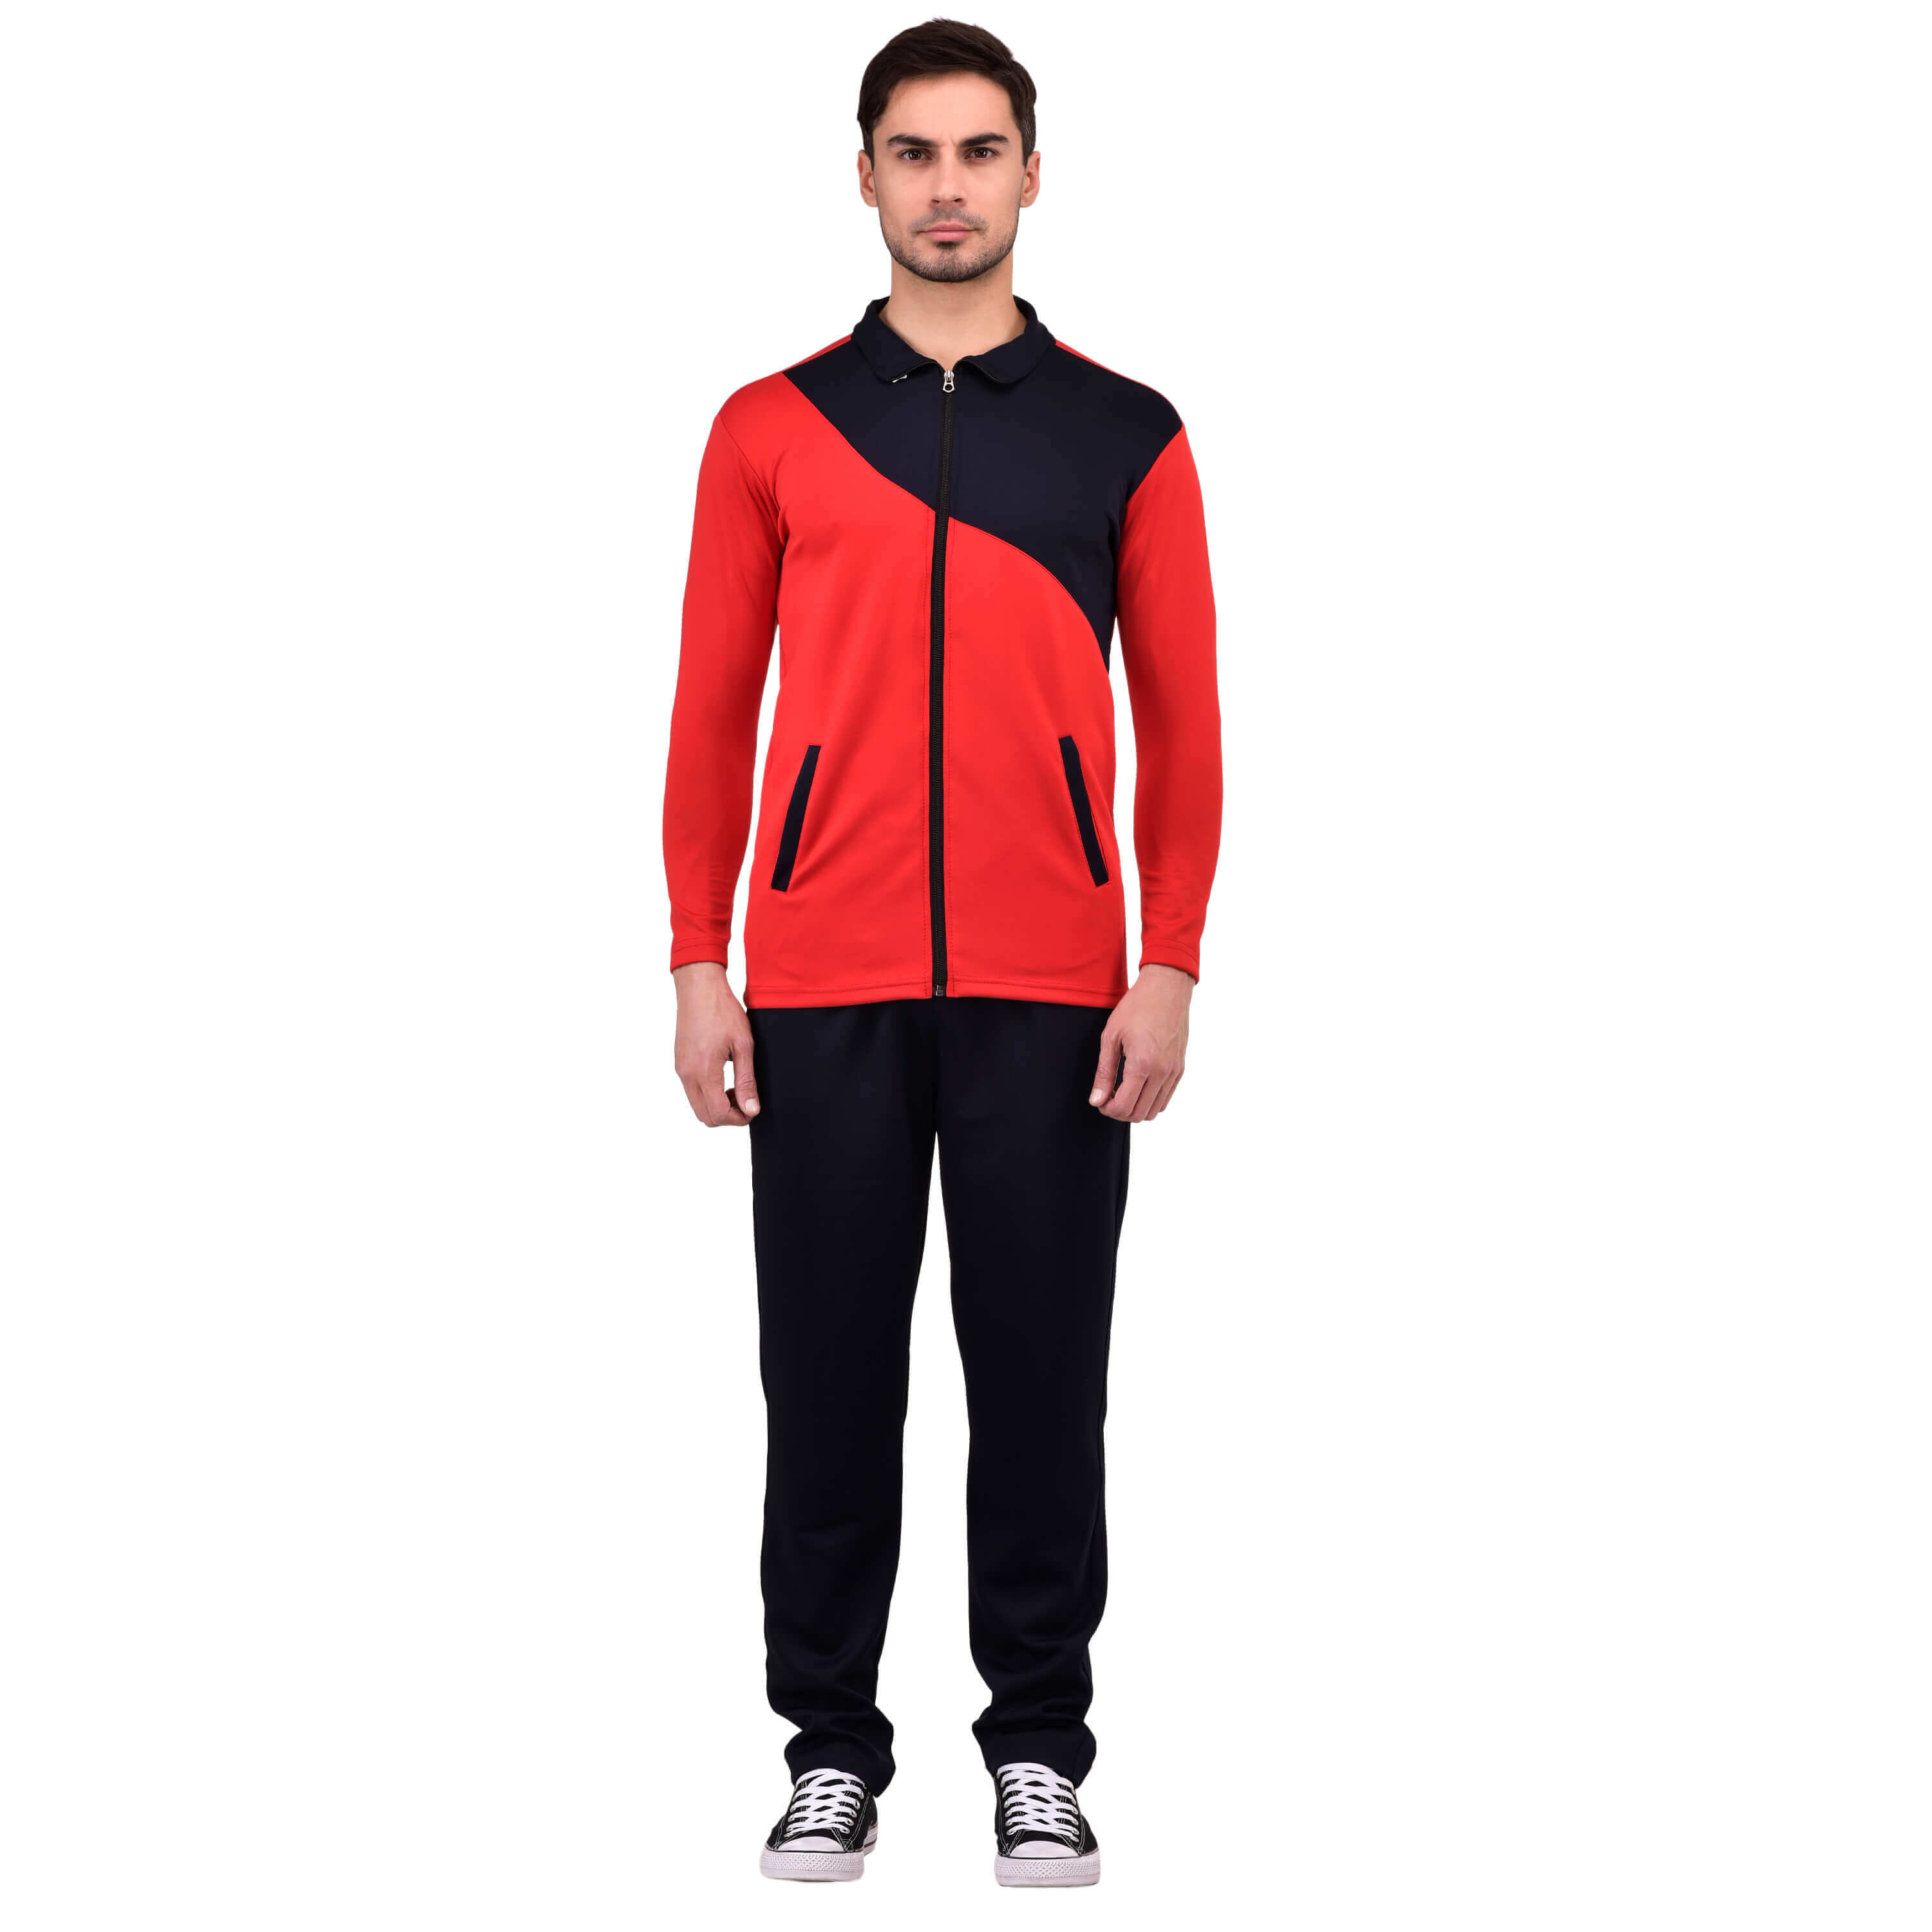 Mens Jogging Suits Manufacturers in Peru